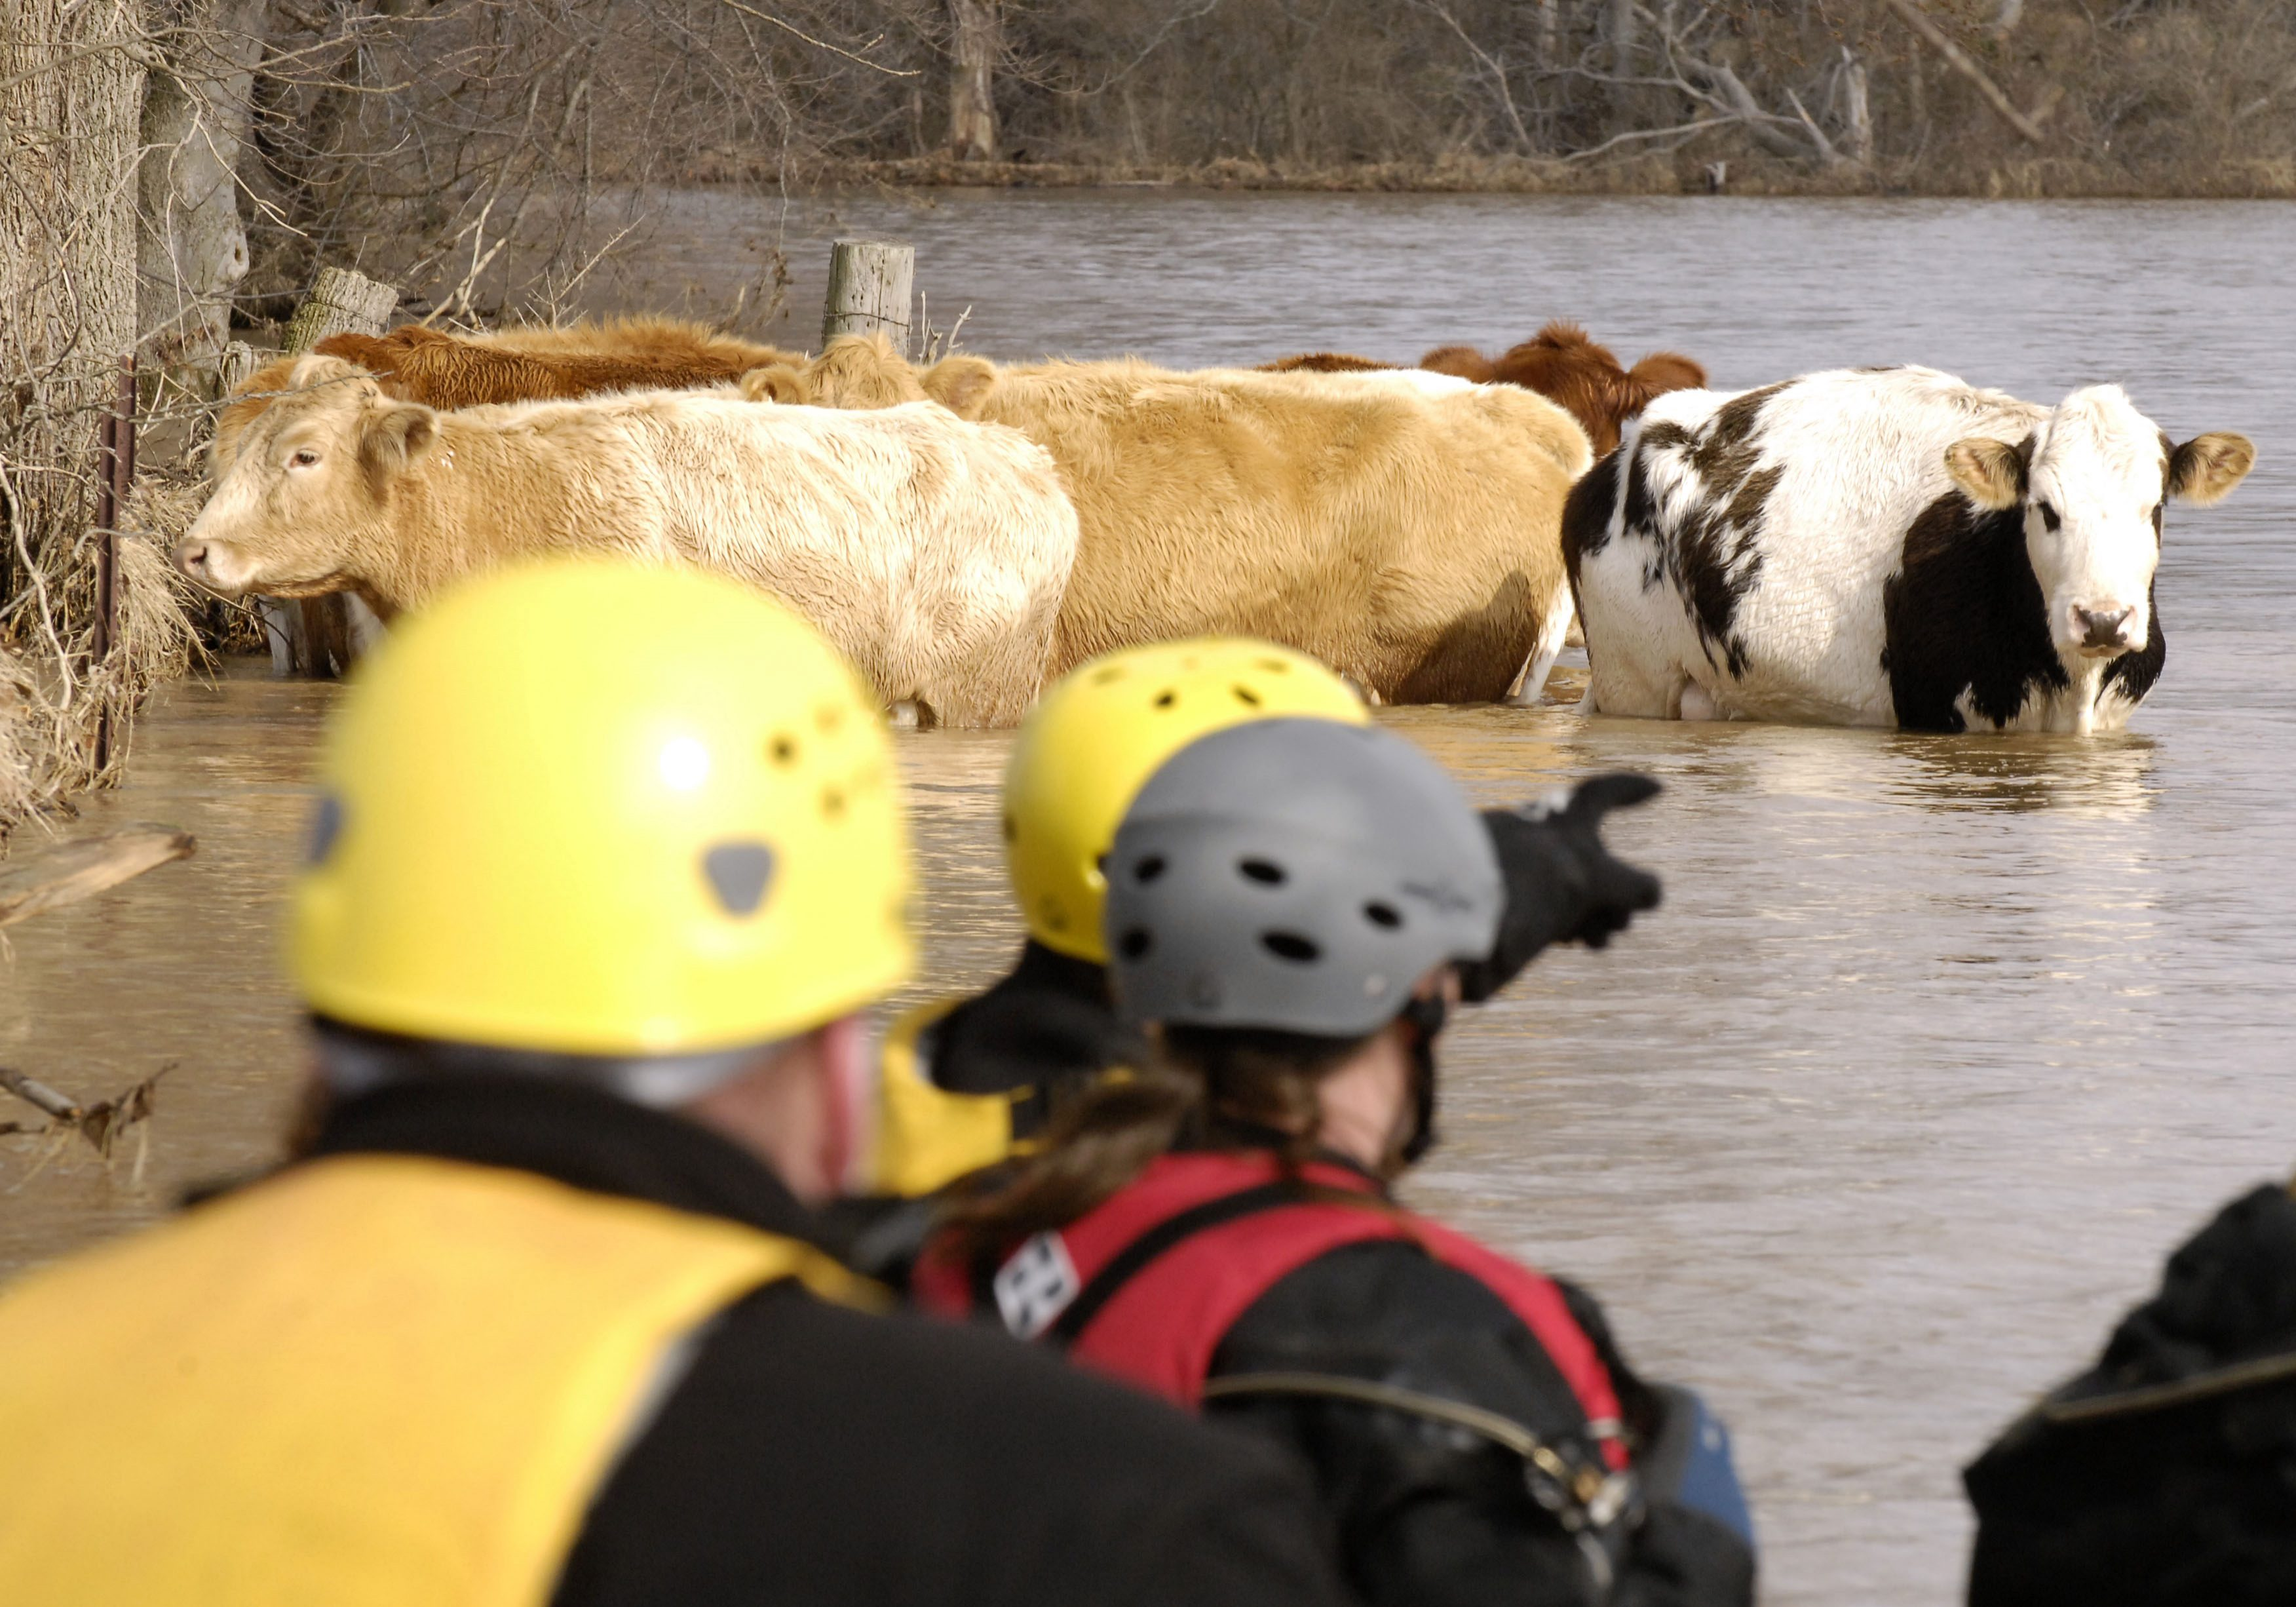 Eureka, MO- Members of the Missouri Emergency Response Service team, a non-profit that does large animal rescues,  launch a boat to take part in a  large animal rescue along with the Humane Society to rescue 13 cattle that were stuck in flood waters.  Jocelyn Augustino/FEMA